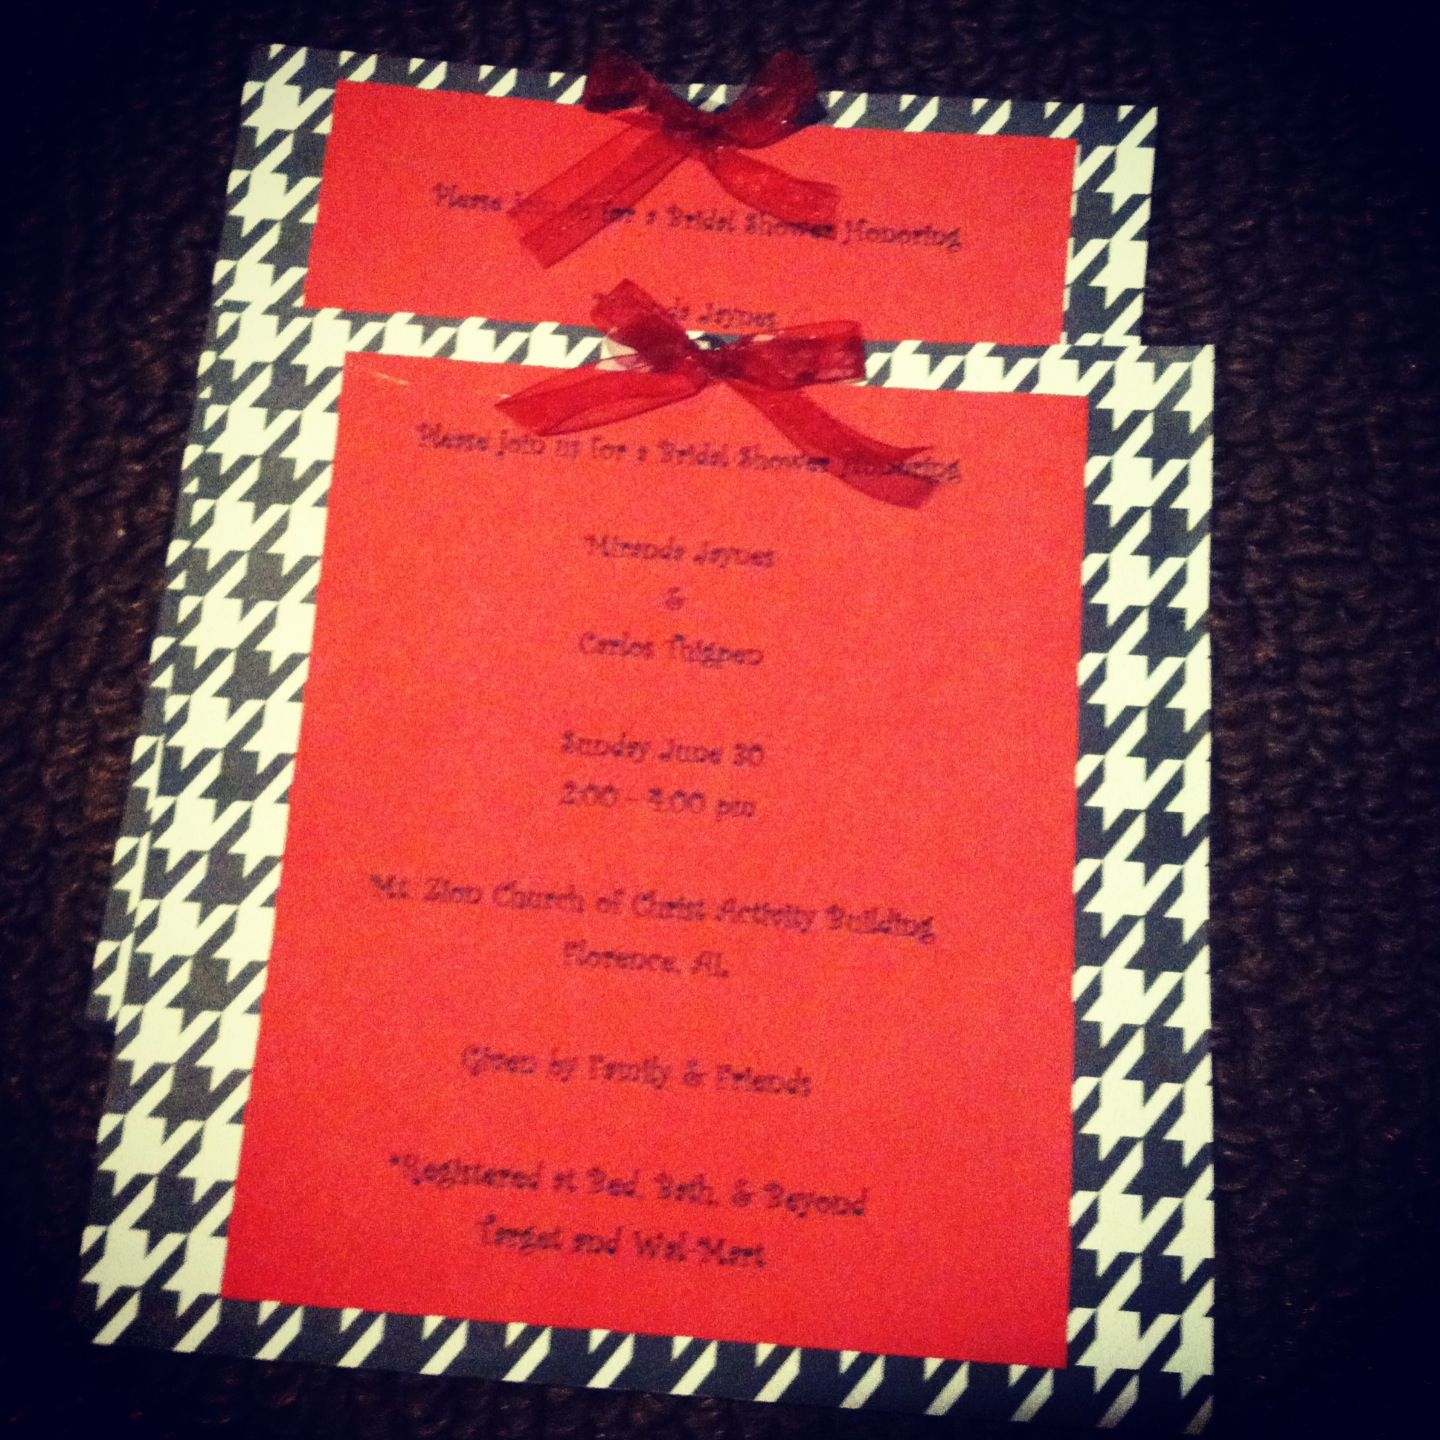 Houndstooth wedding shower invitations we made :) | Cute Crafts ...